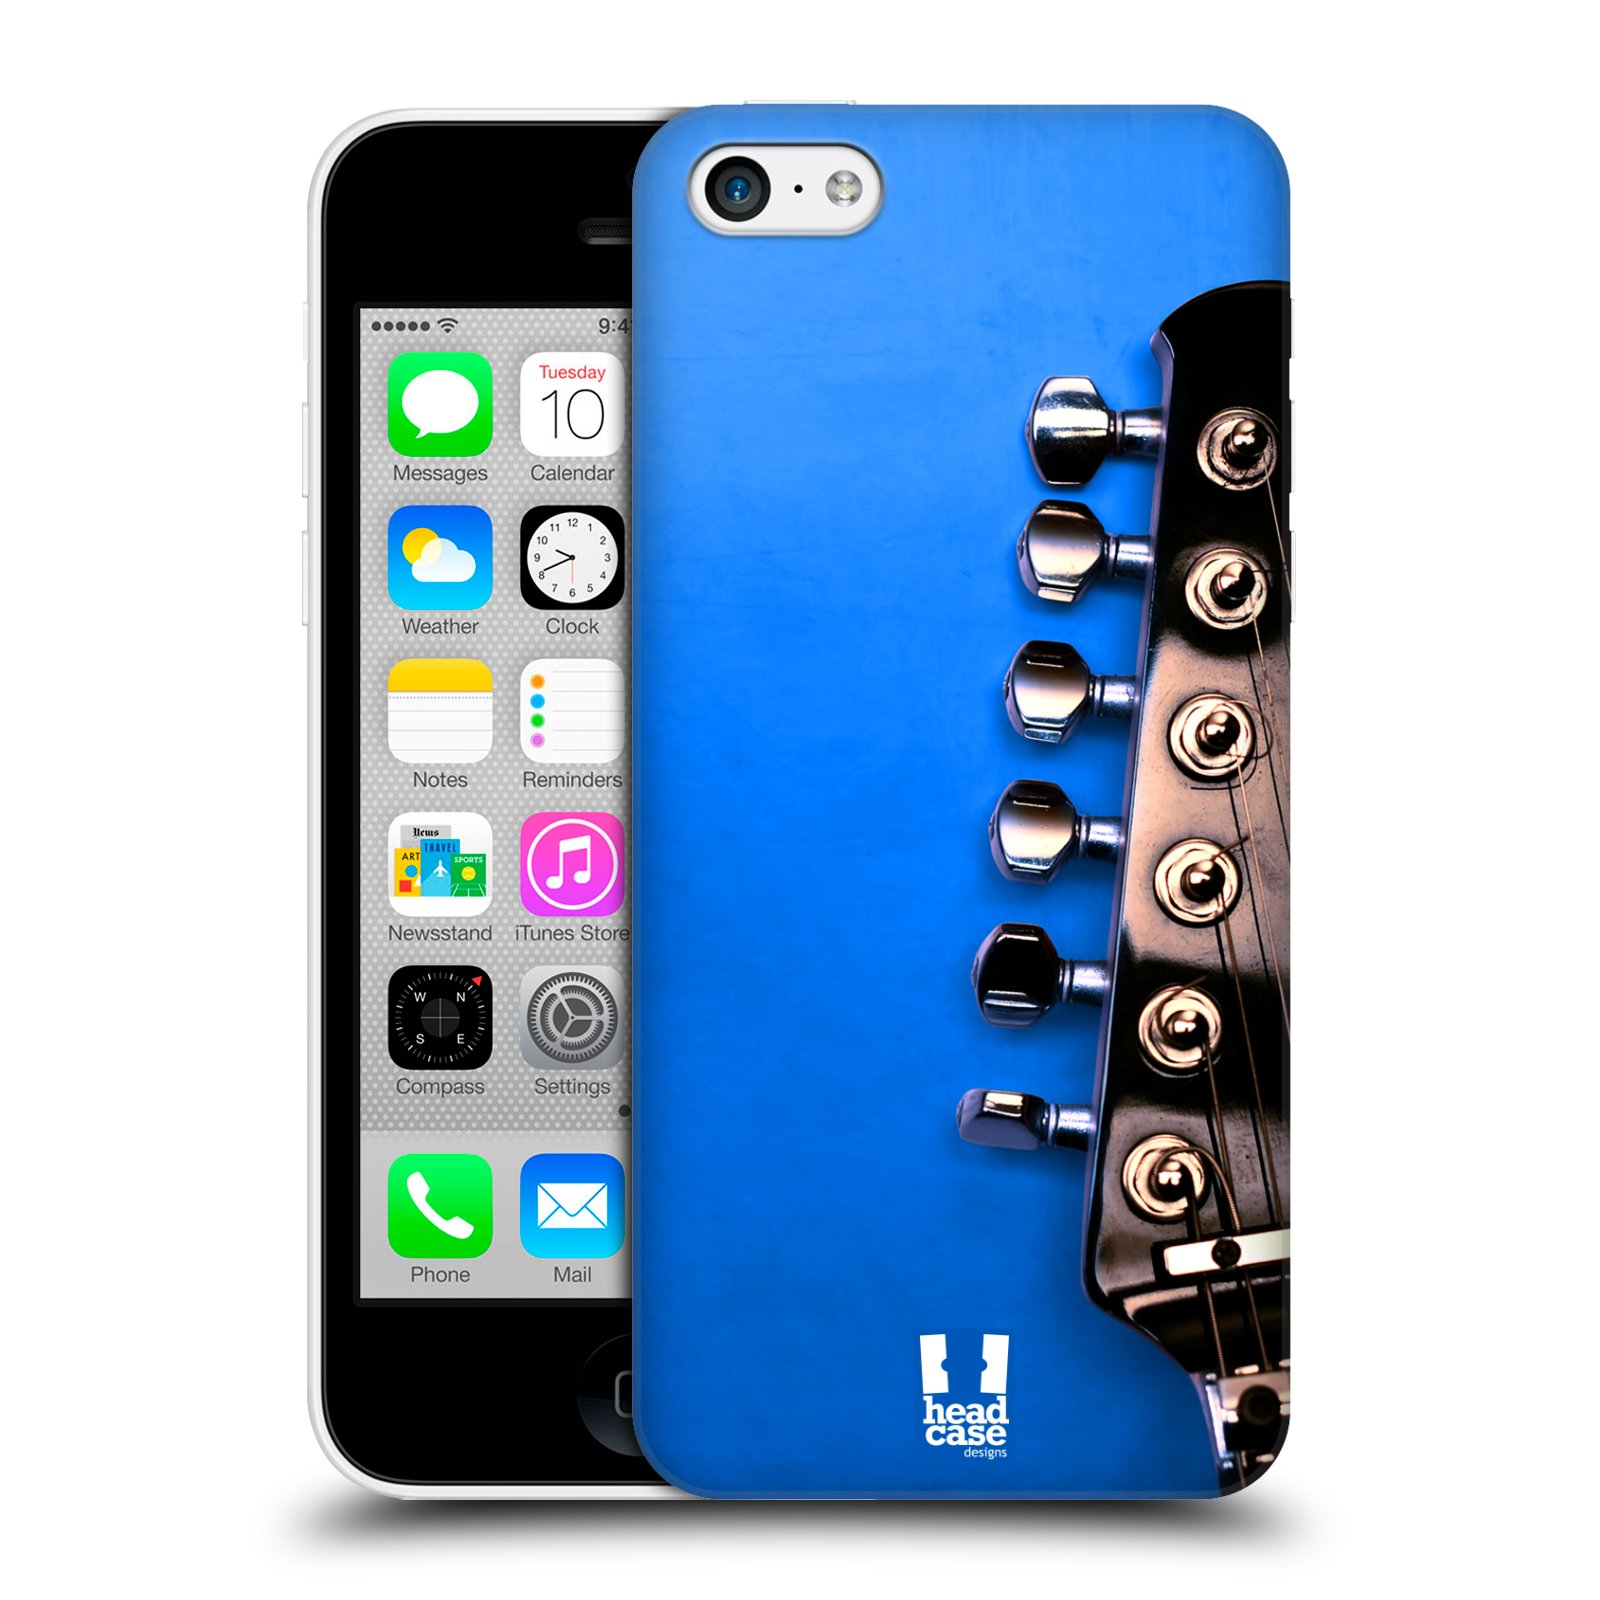 HEAD-CASE-DESIGNS-ELECTRIC-GUITAR-PROTECTIVE-BACK-CASE-COVER-FOR-APPLE-iPHONE-5C